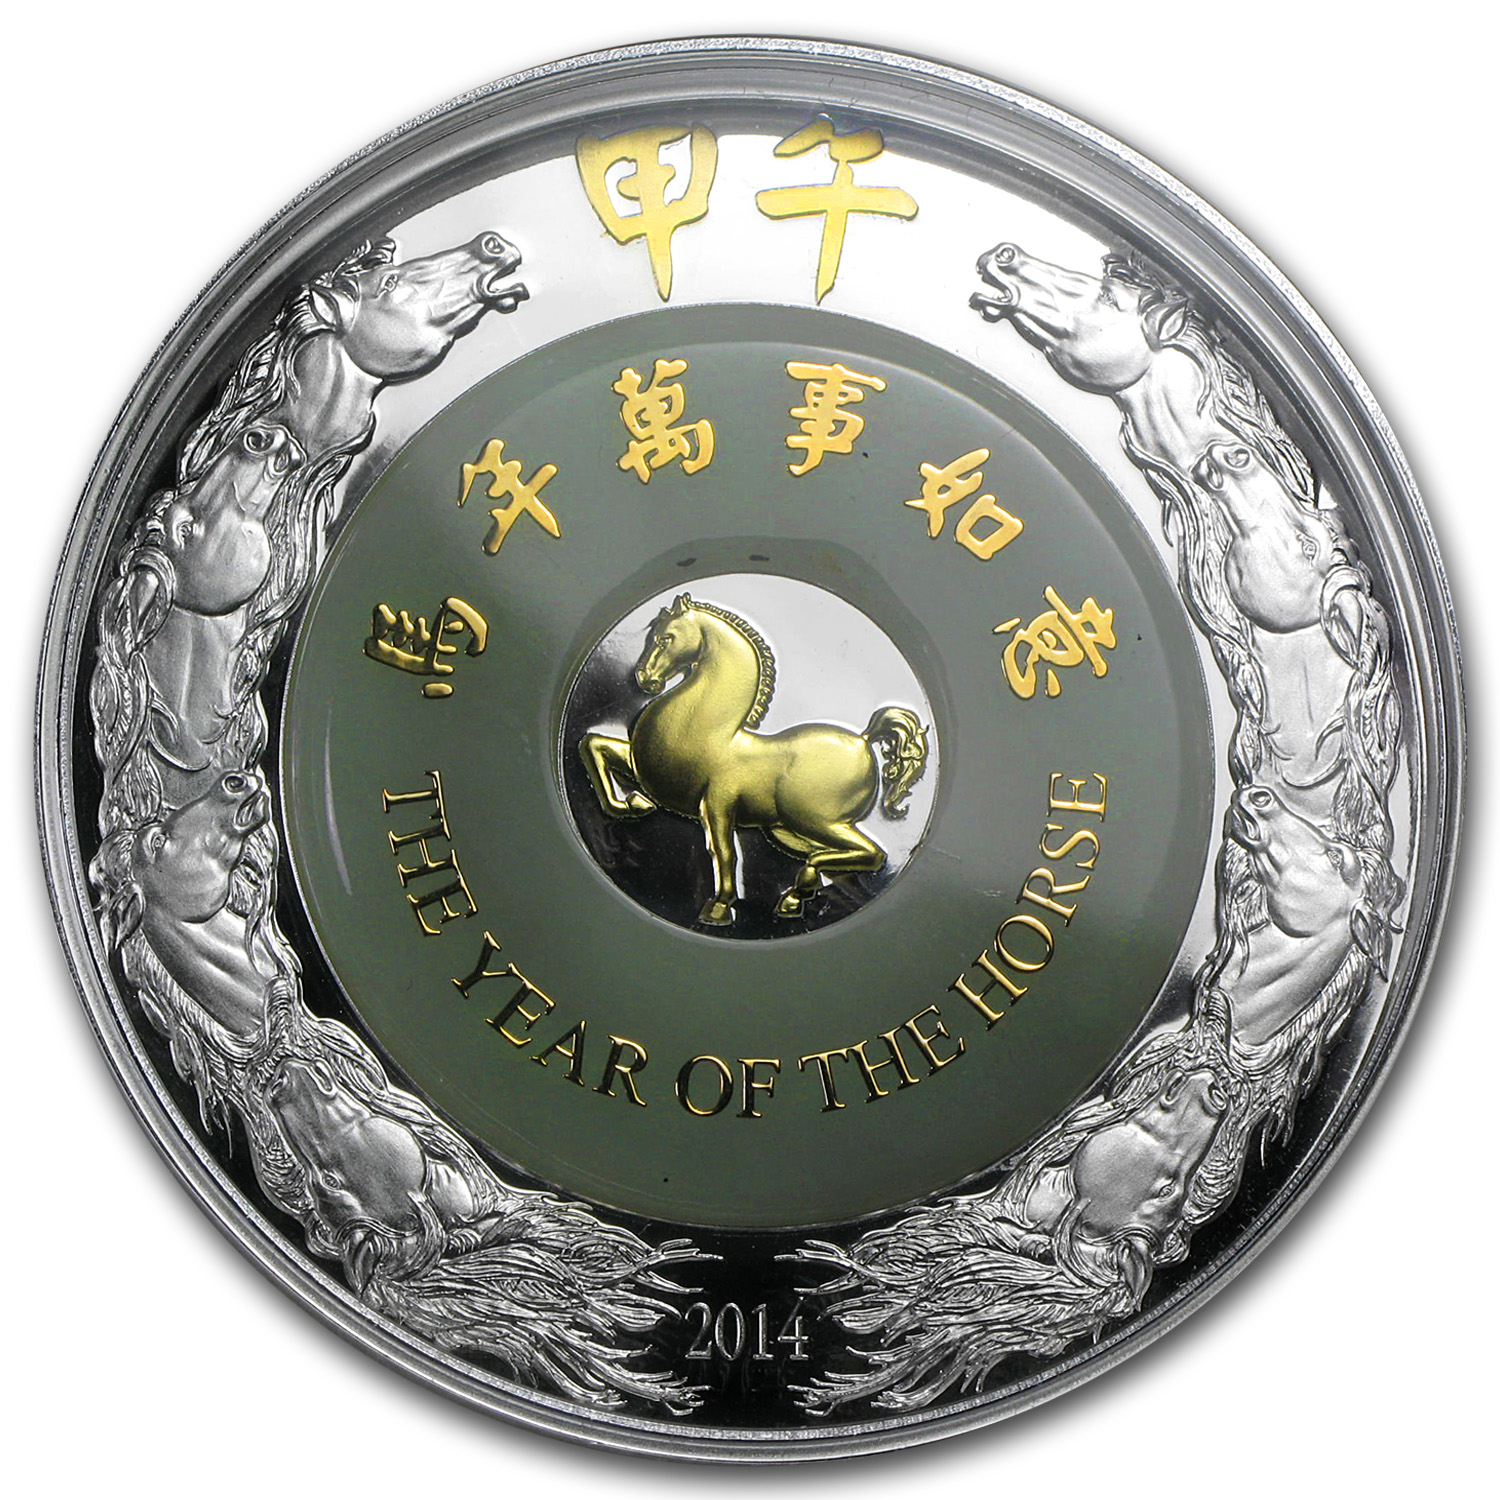 2014 Laos 2 oz Silver & Jade Year of the Horse Proof